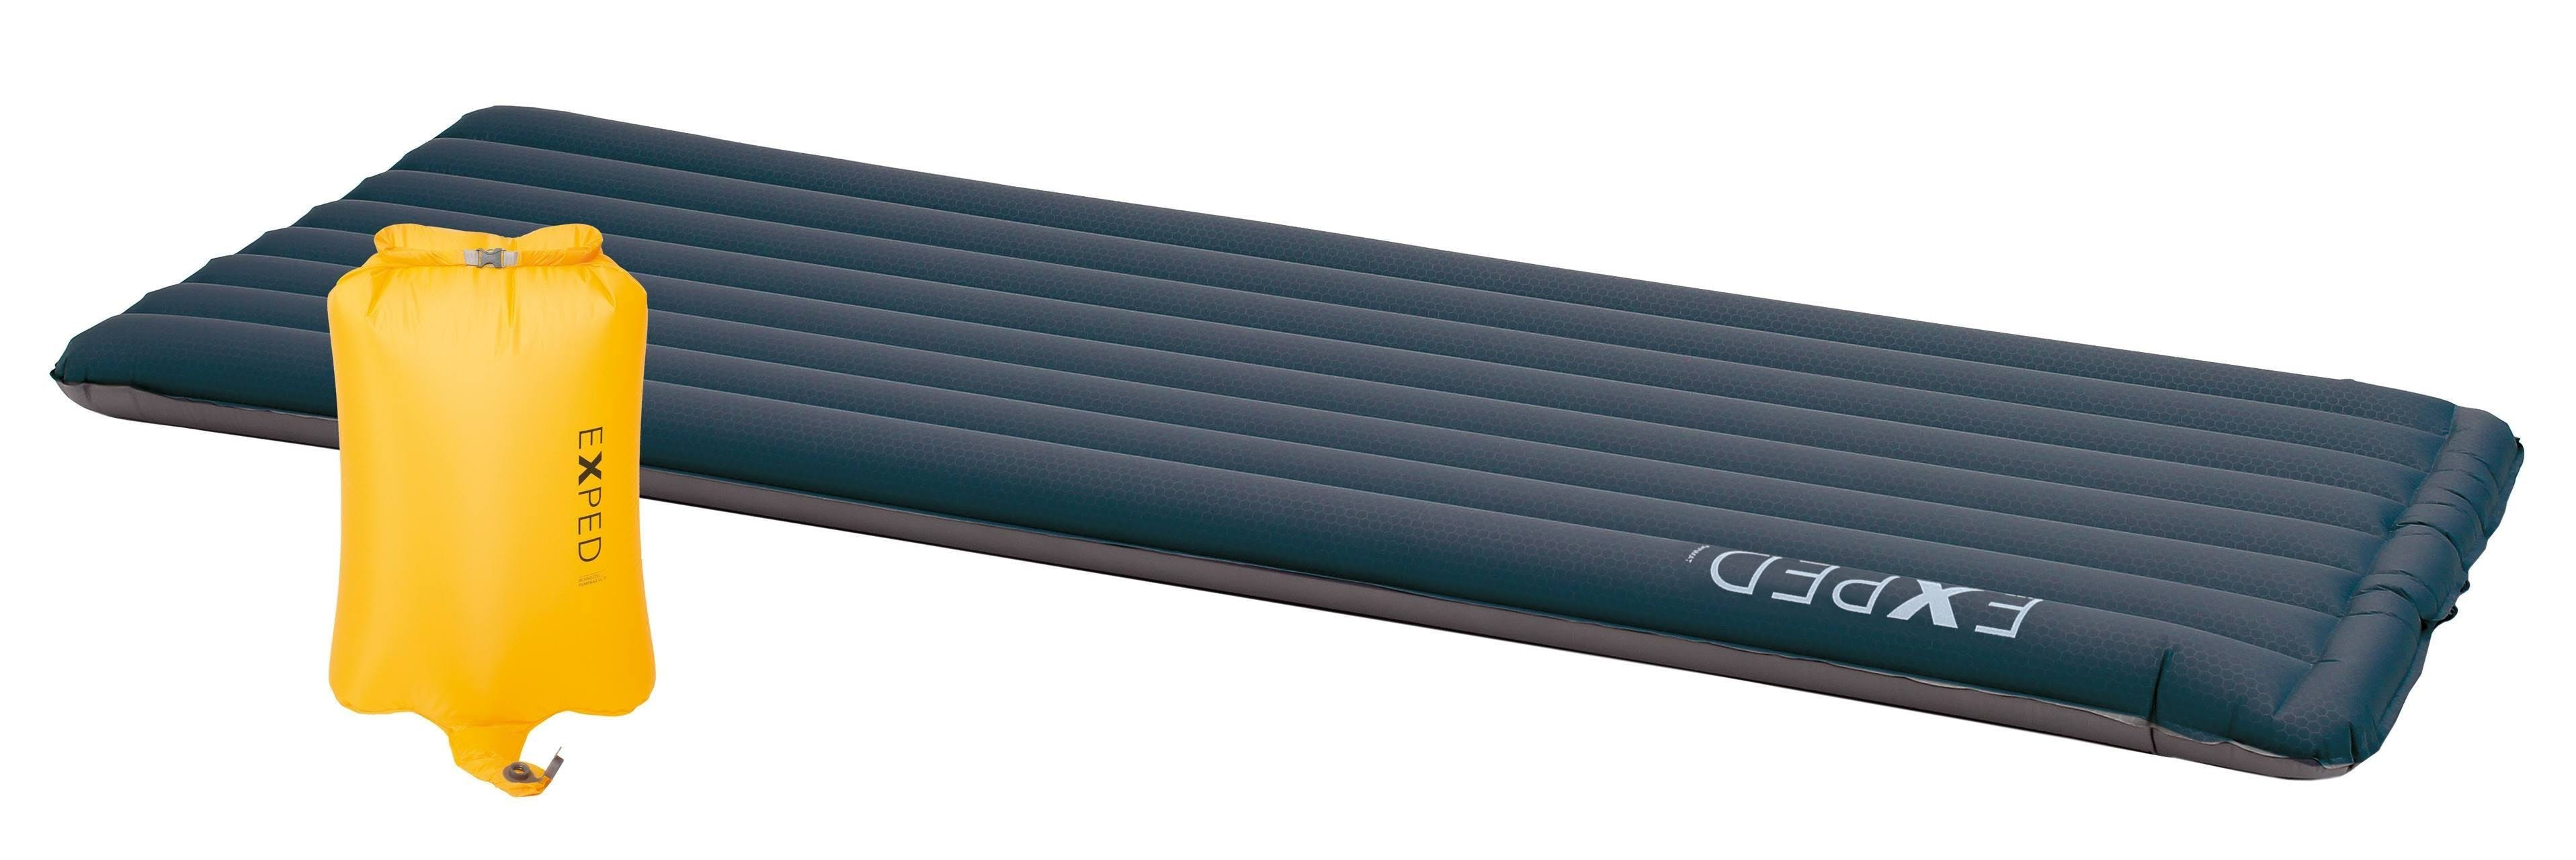 Exped DownMat XP 9 Sleeping Pad